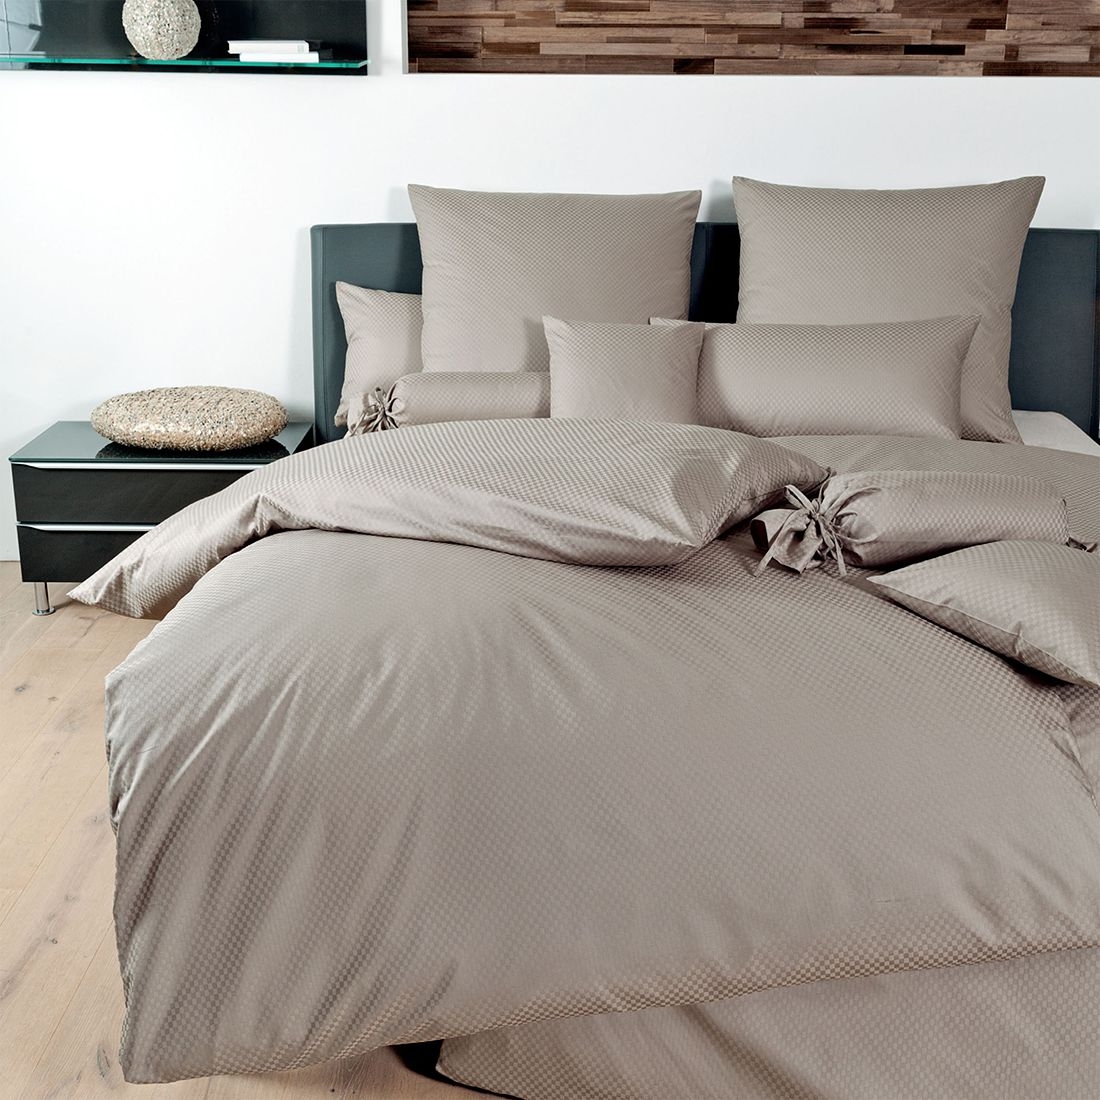 bettw sche mako brokat damast rubin 1323 baumwolle taupe 80x80 cm 155x220 cm janine. Black Bedroom Furniture Sets. Home Design Ideas